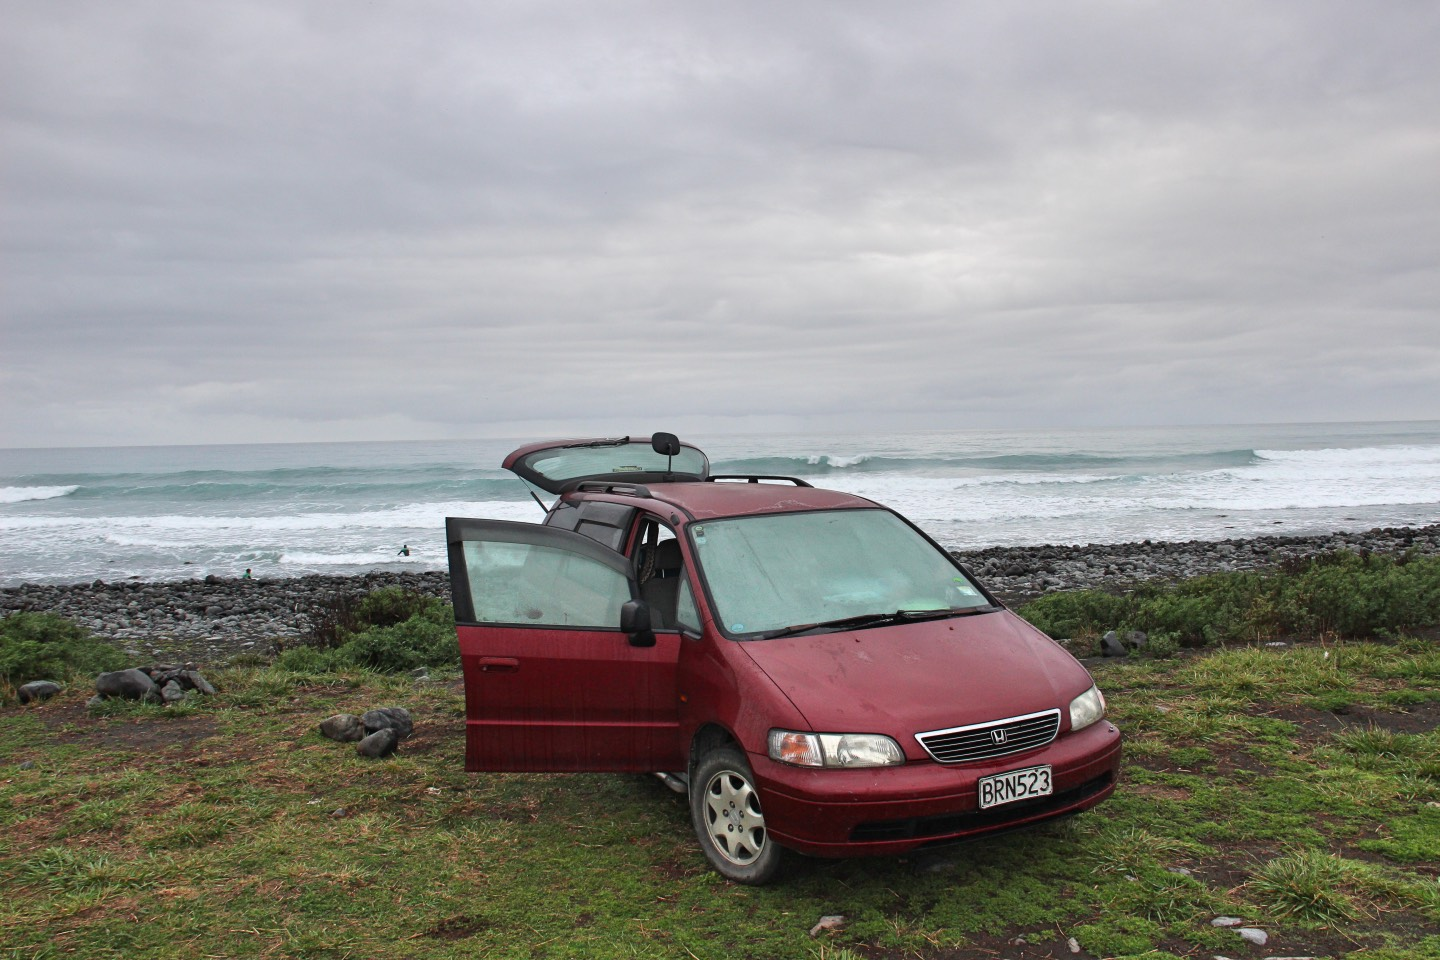 Weltreise_Backpacking_Neuseeland_Kaikoura